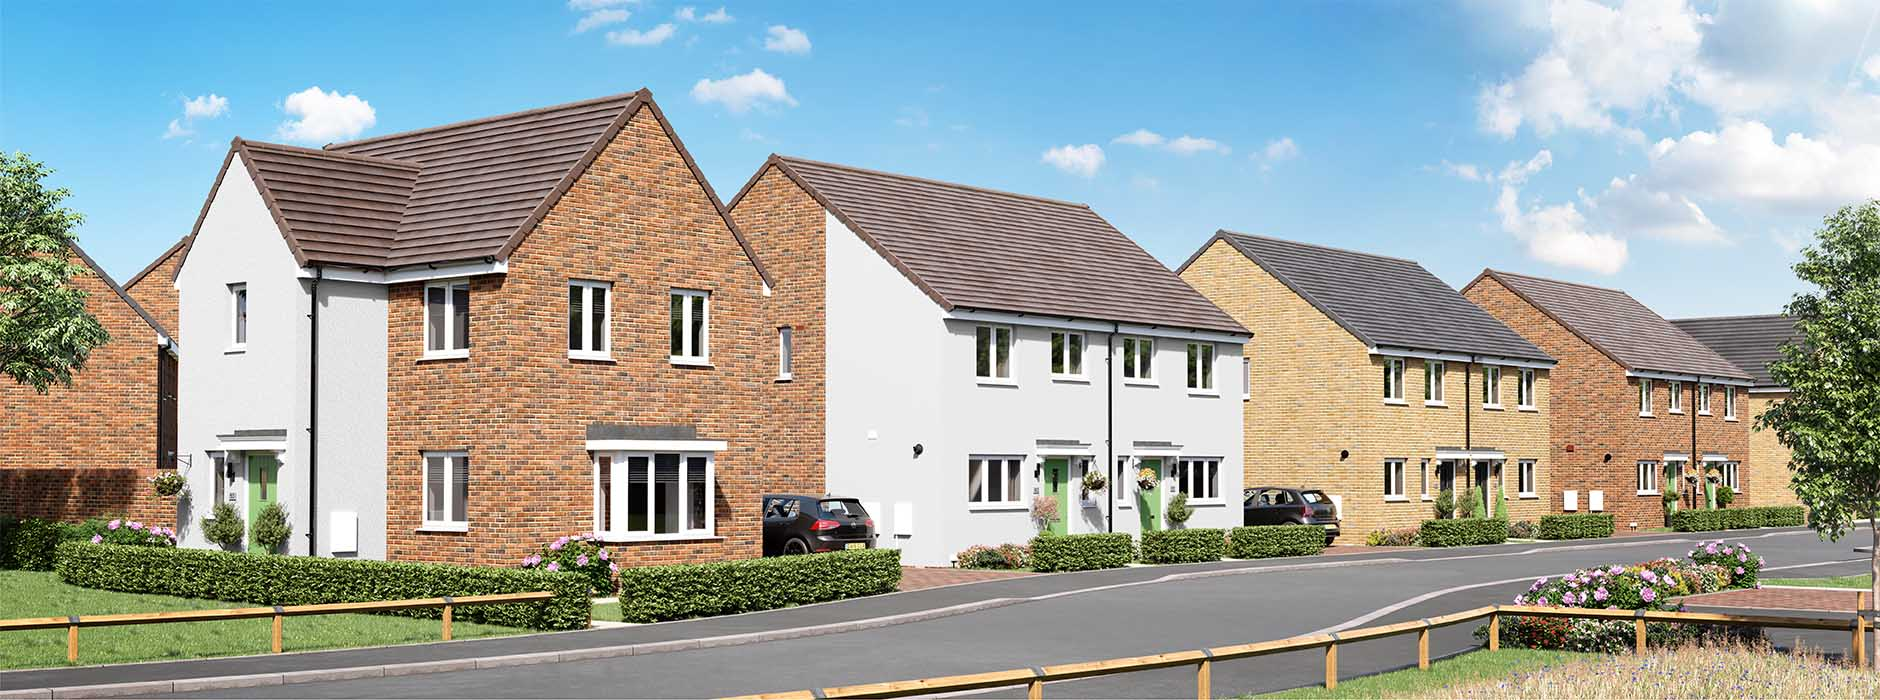 Keepmoat Homes to Create 79 New Homes